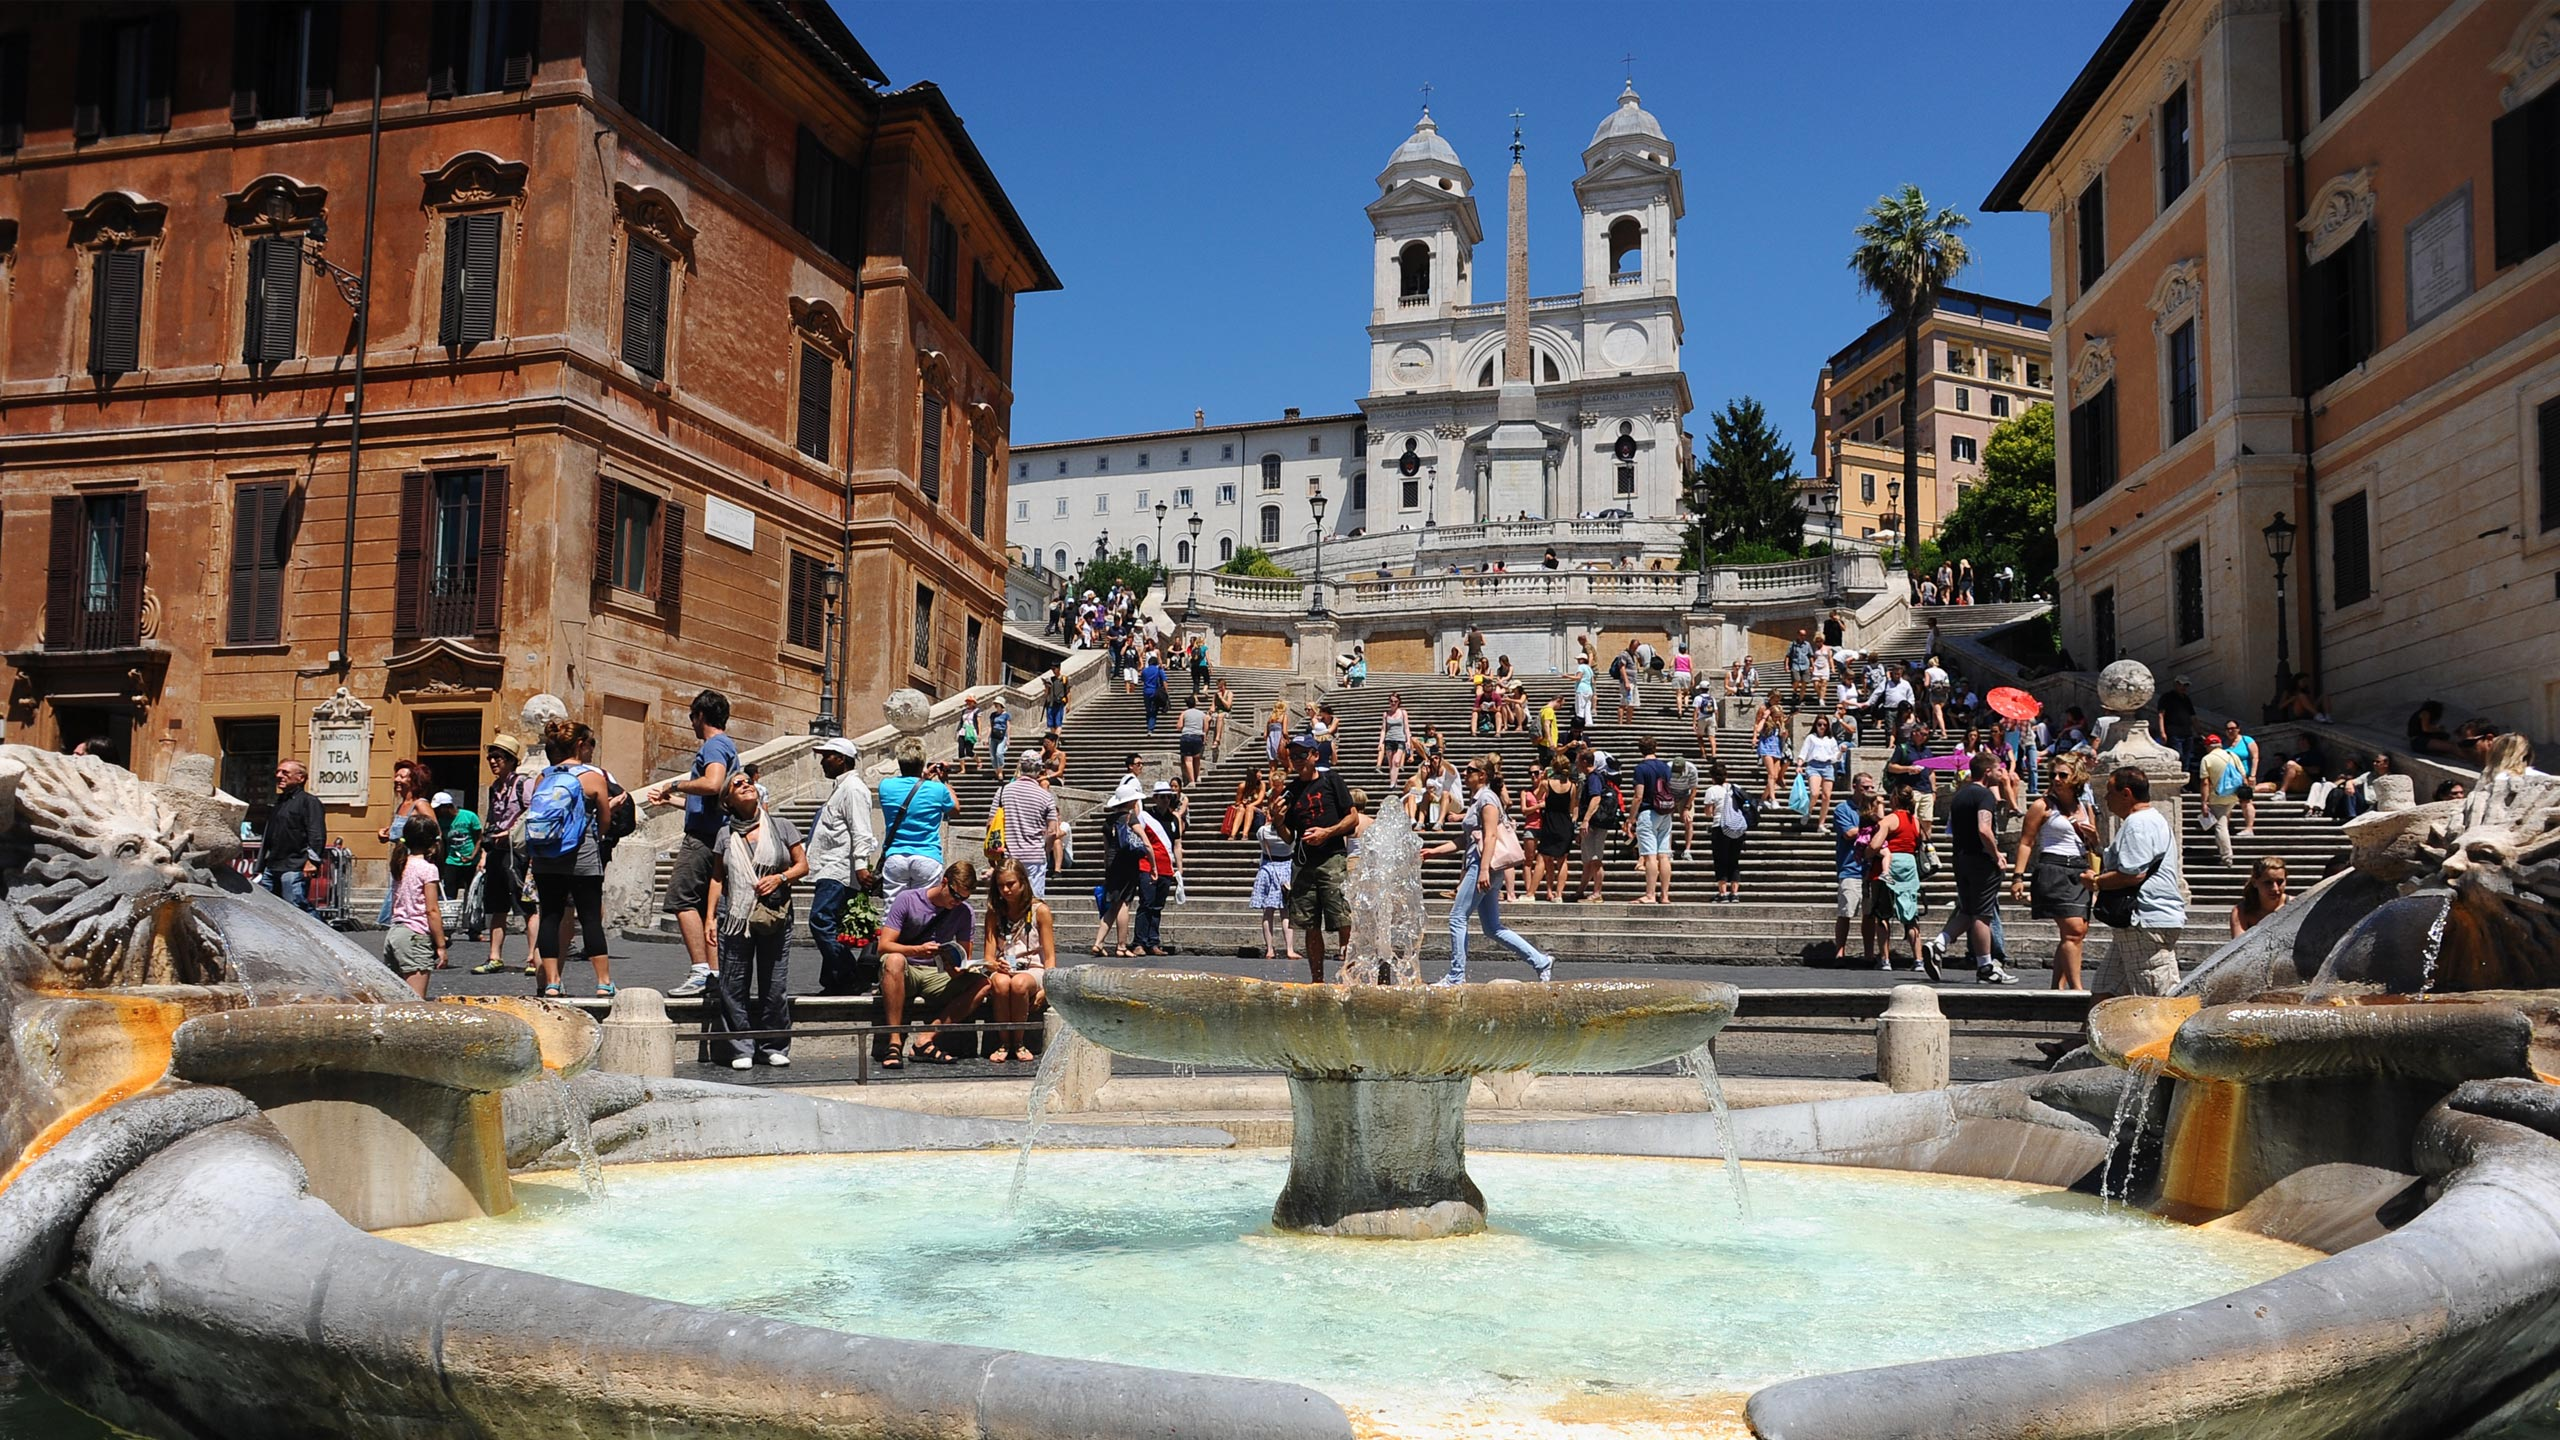 Spagna Square Is One Of The Most Famous Squares In The